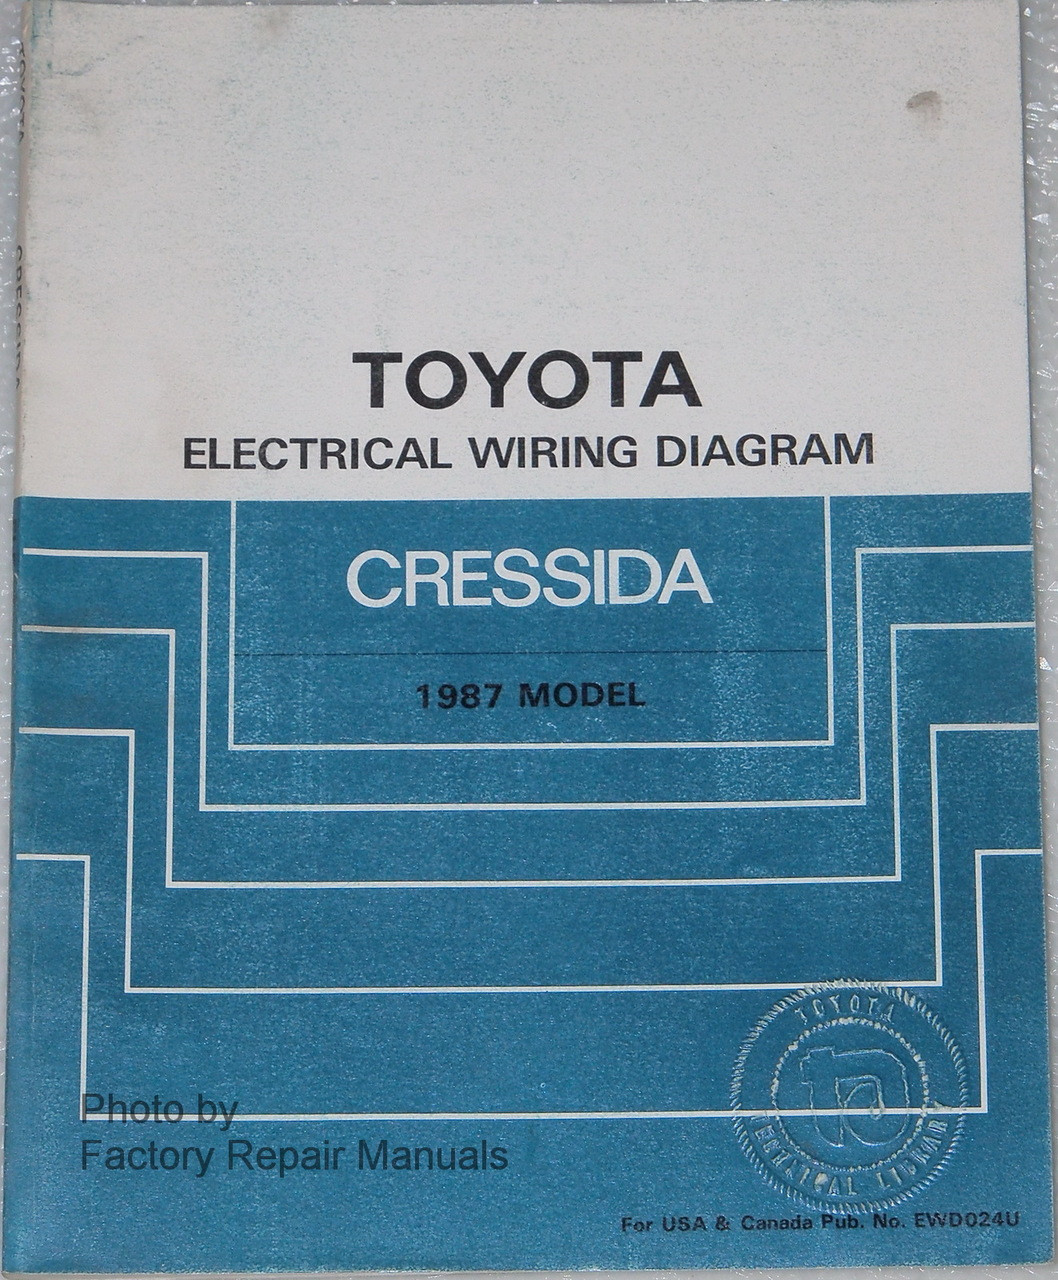 1986 toyota cressida wiring diagram 1987 toyota cressida electrical wiring diagrams original manual  1987 toyota cressida electrical wiring